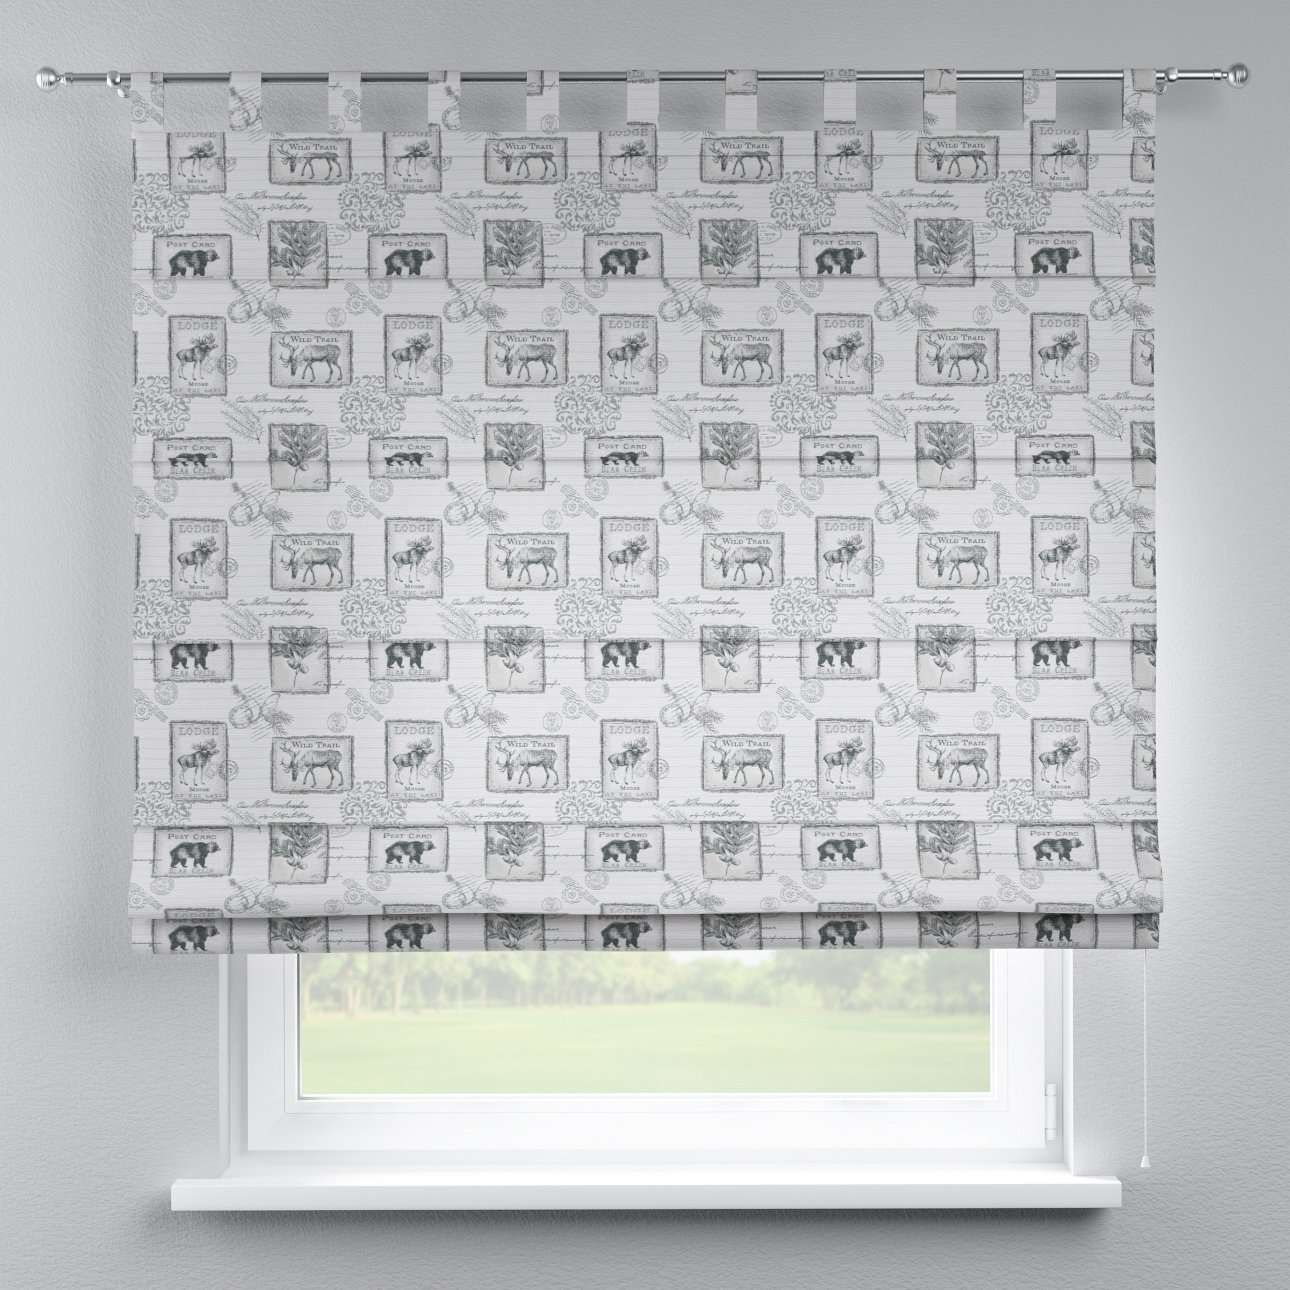 Verona tab top roman blind 80 x 170 cm (31.5 x 67 inch) in collection Nordic, fabric: 630-18